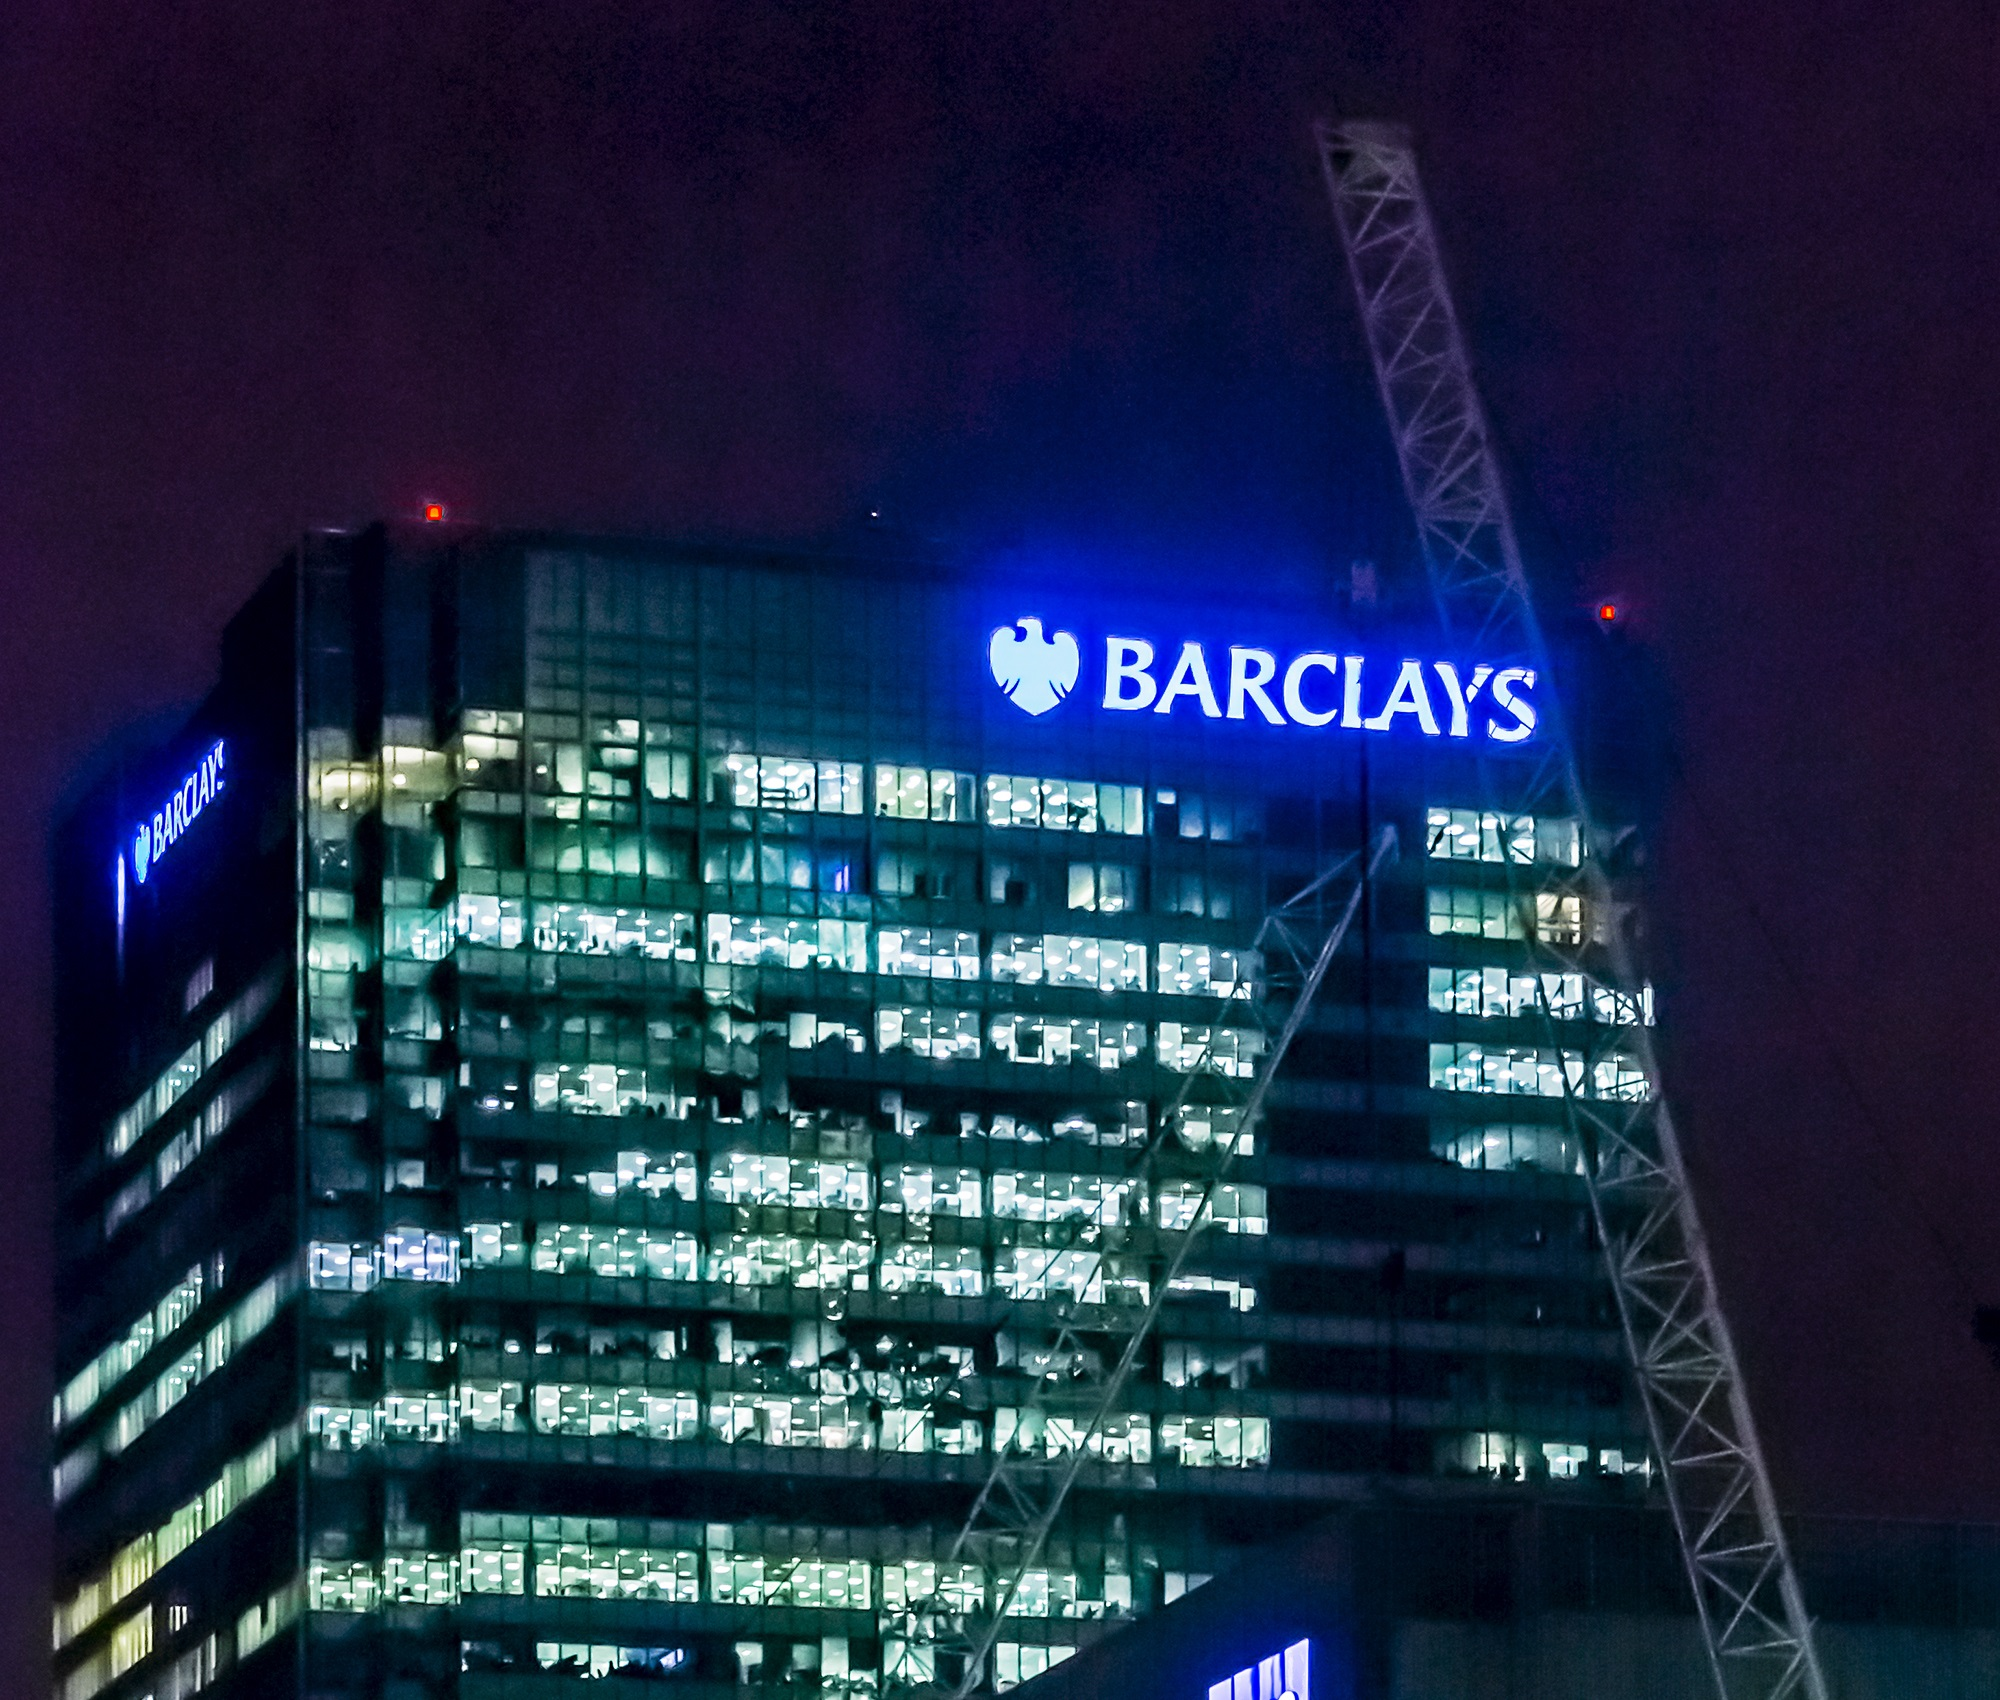 barclays bank in london